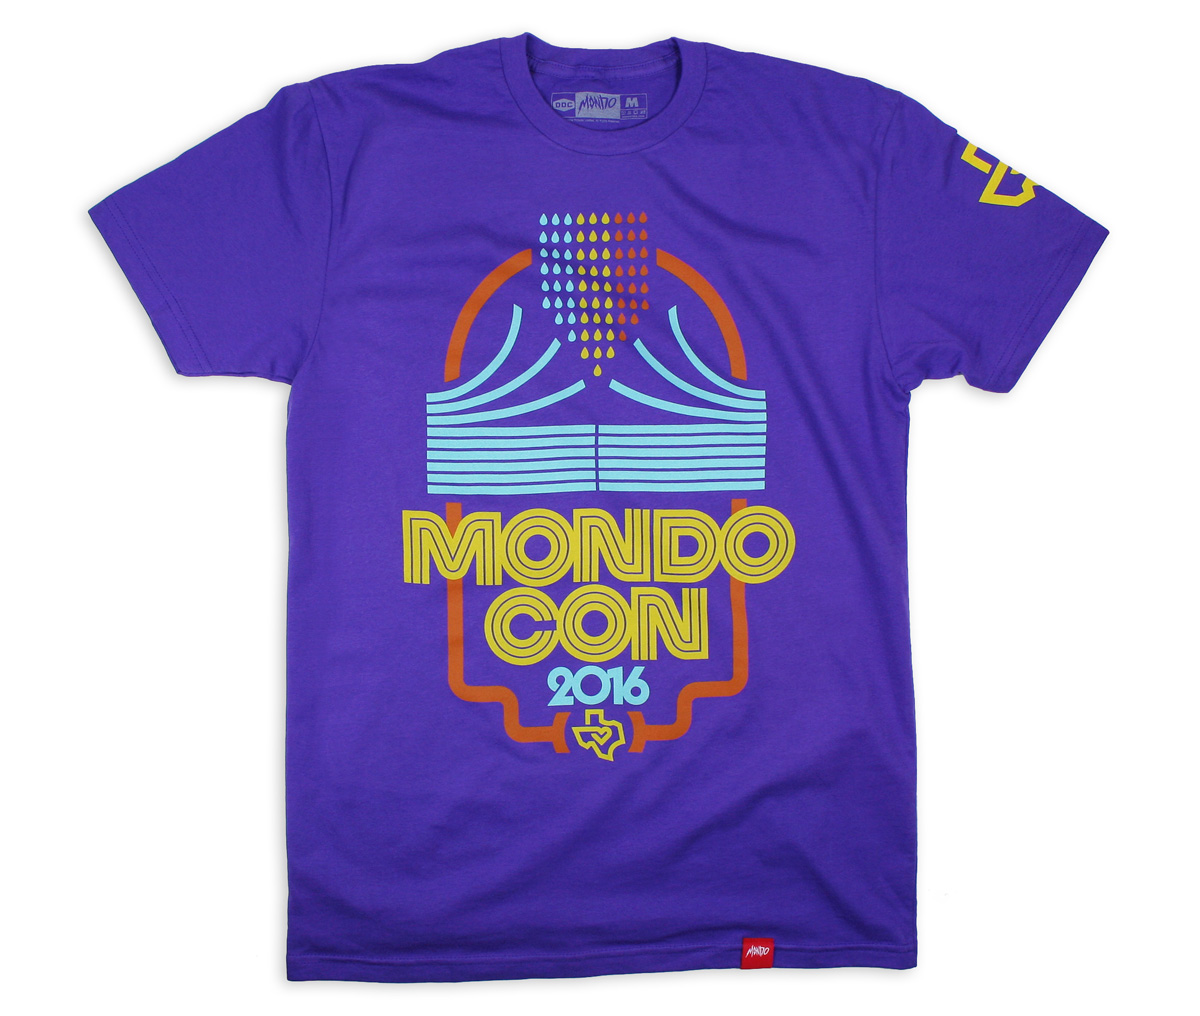 mondocon-2016-purple-tshirt